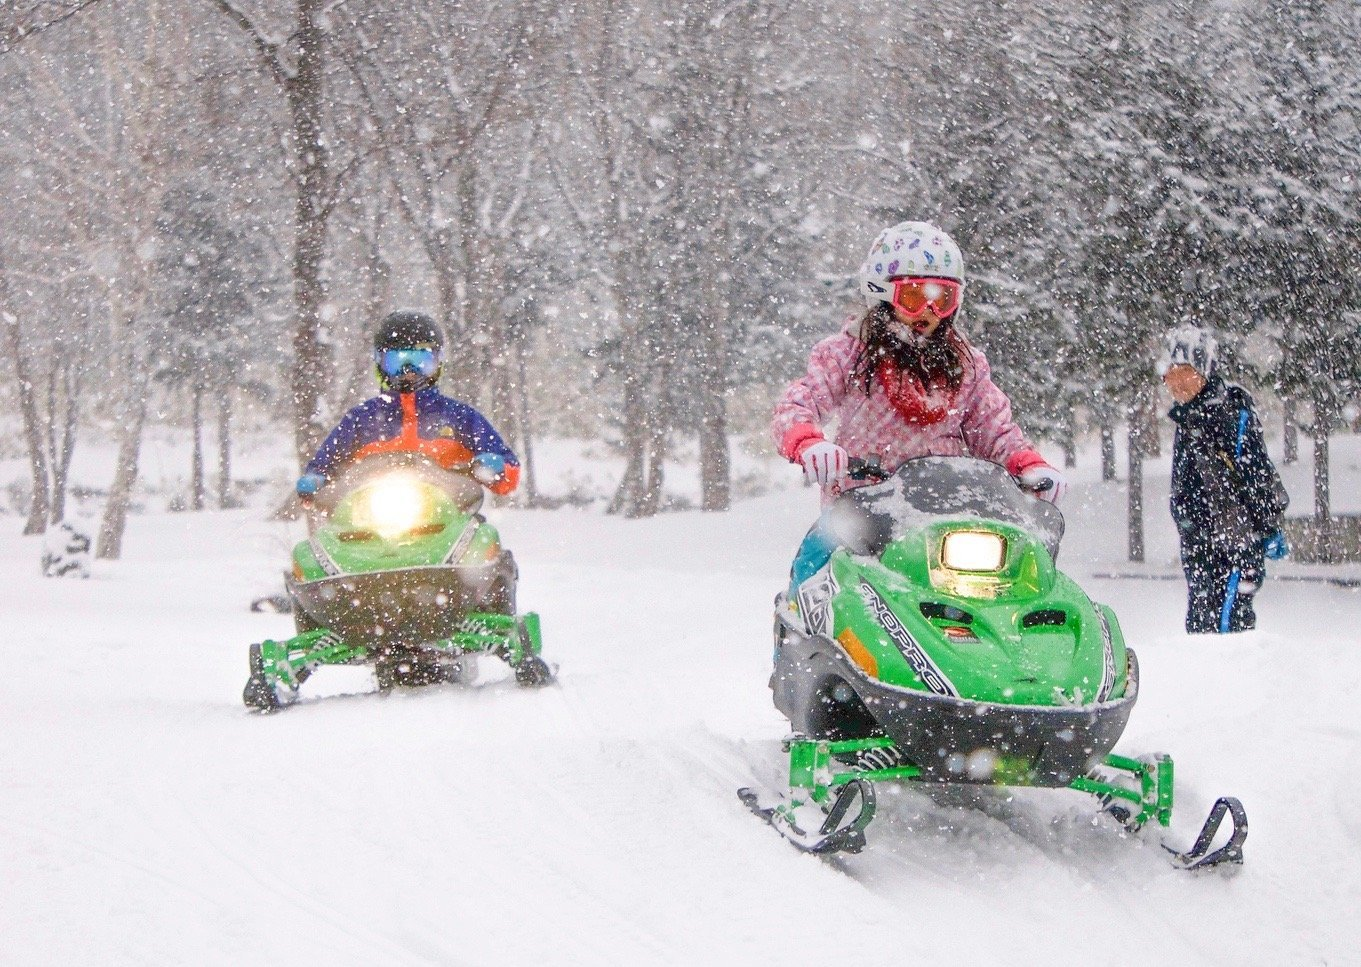 2 children driving snowmobiles together